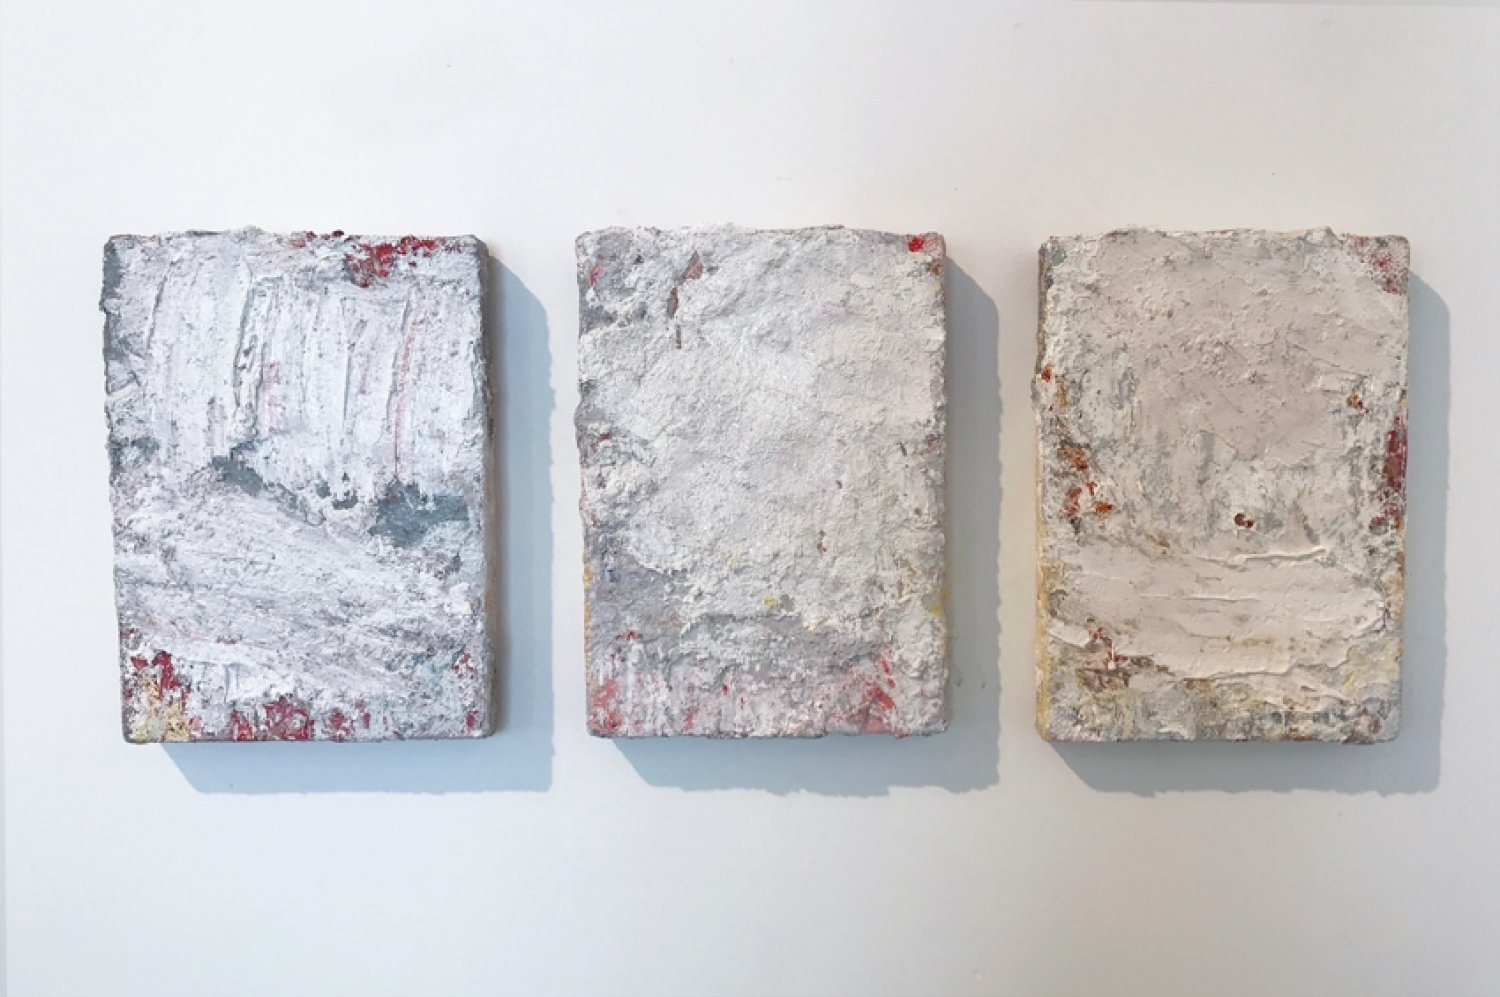 Aida Tomescu, Left: In a carpet made of water I, 2017 oil, silver pigment on Belgian linen, 36 x26 cm. Middle: In a carpet made of water II, 2017 oil, silver pigment on Belgian linen, 36 x26 cm. Right: In a carpet made of water III, 2017 oil, silver pigment on Belgian linen, 36 x 26 cm